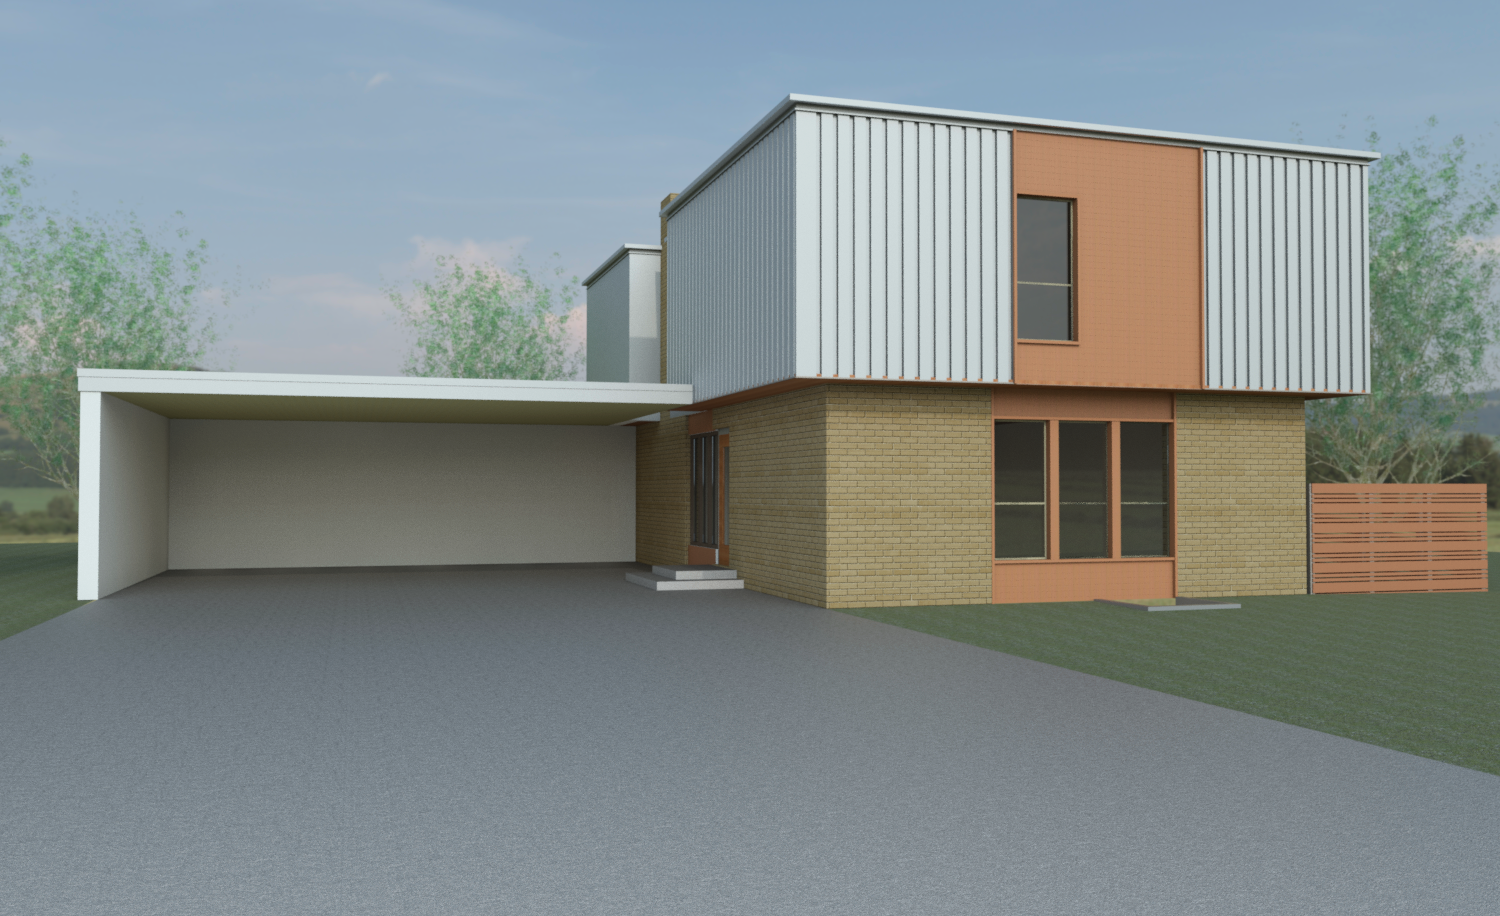 01 Martins_Residence_3D_View_-_front_from_street.png